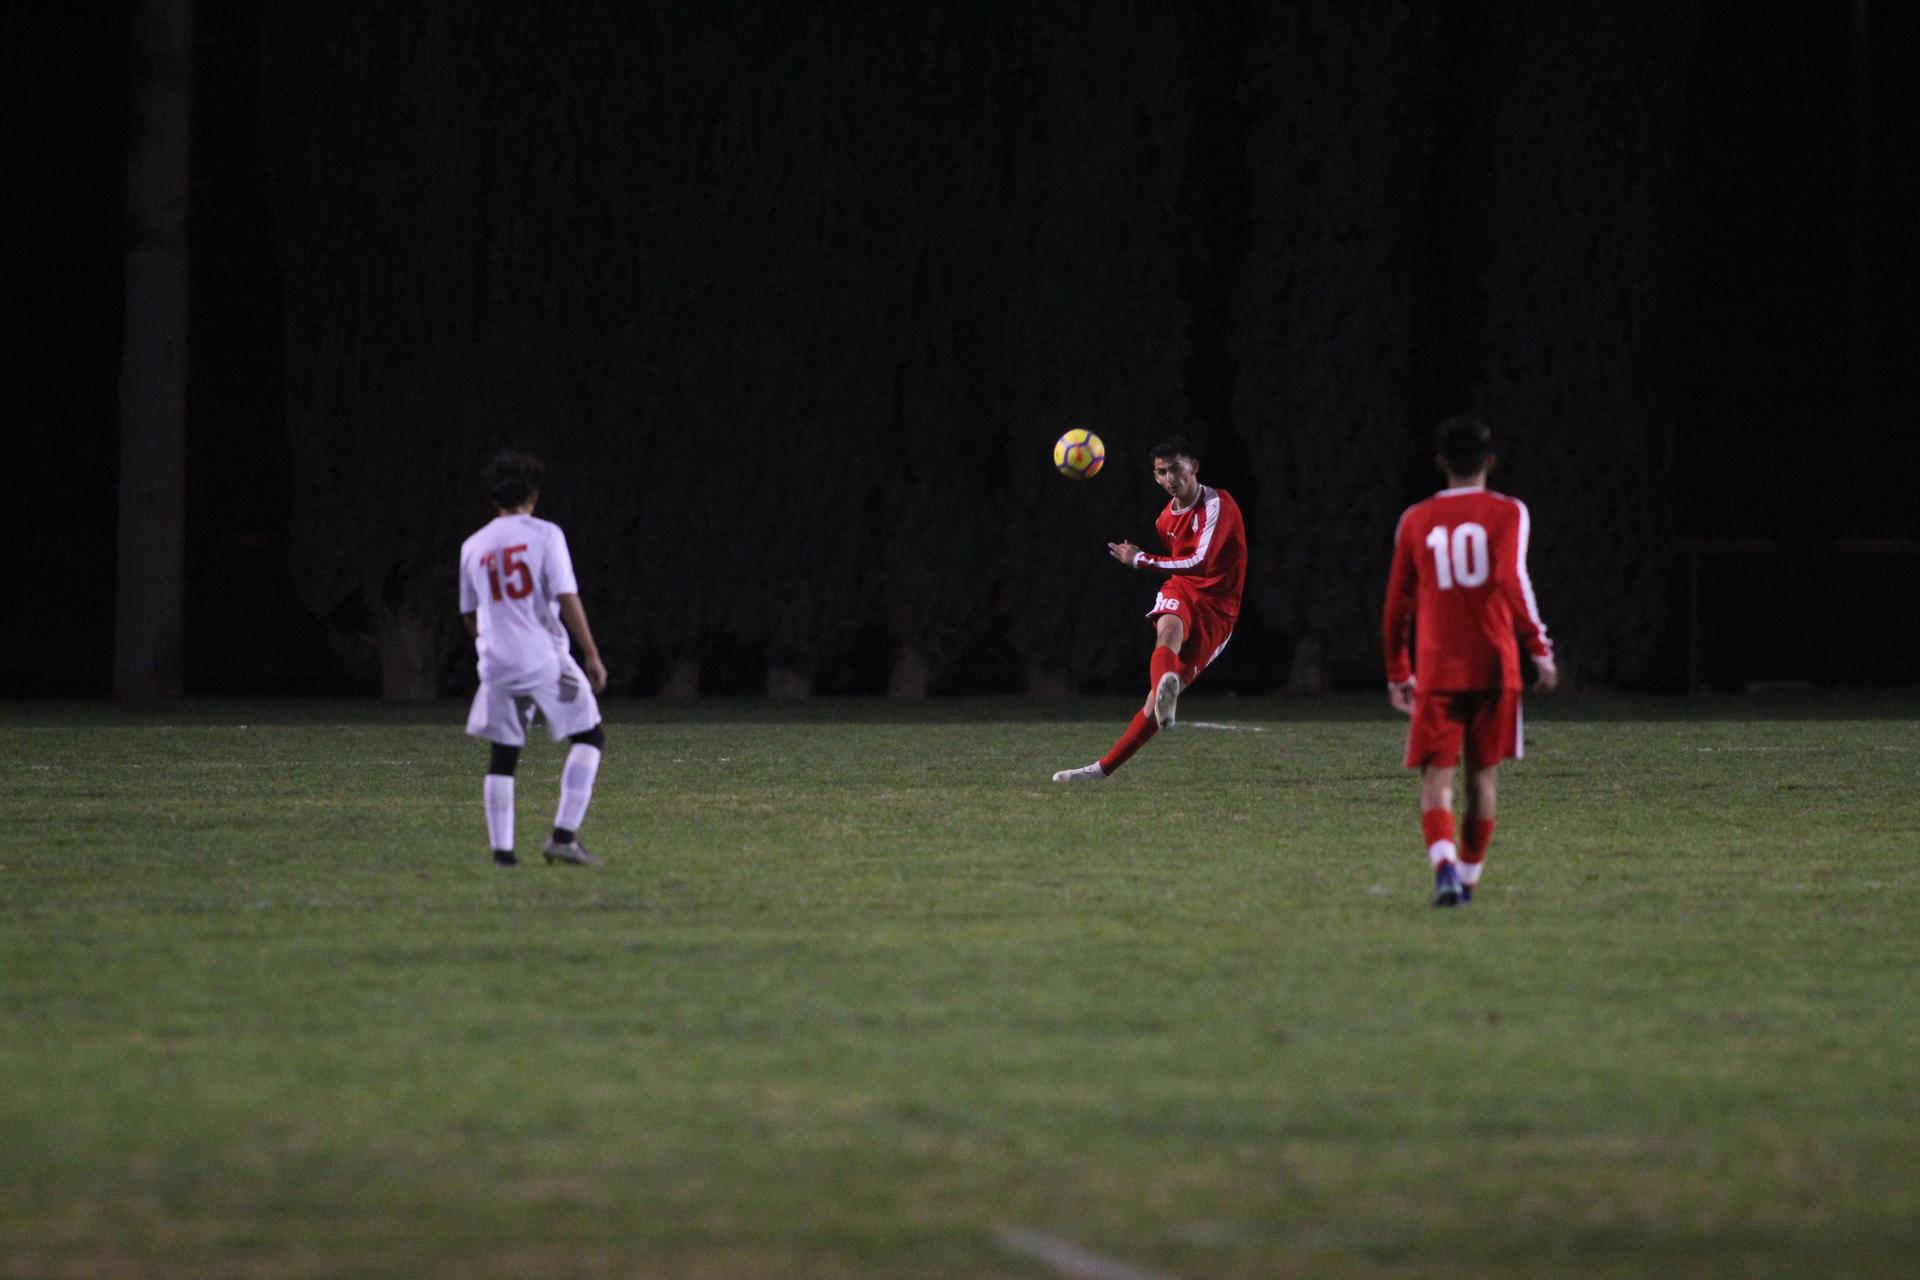 Varsity boys playing soccer against McLane